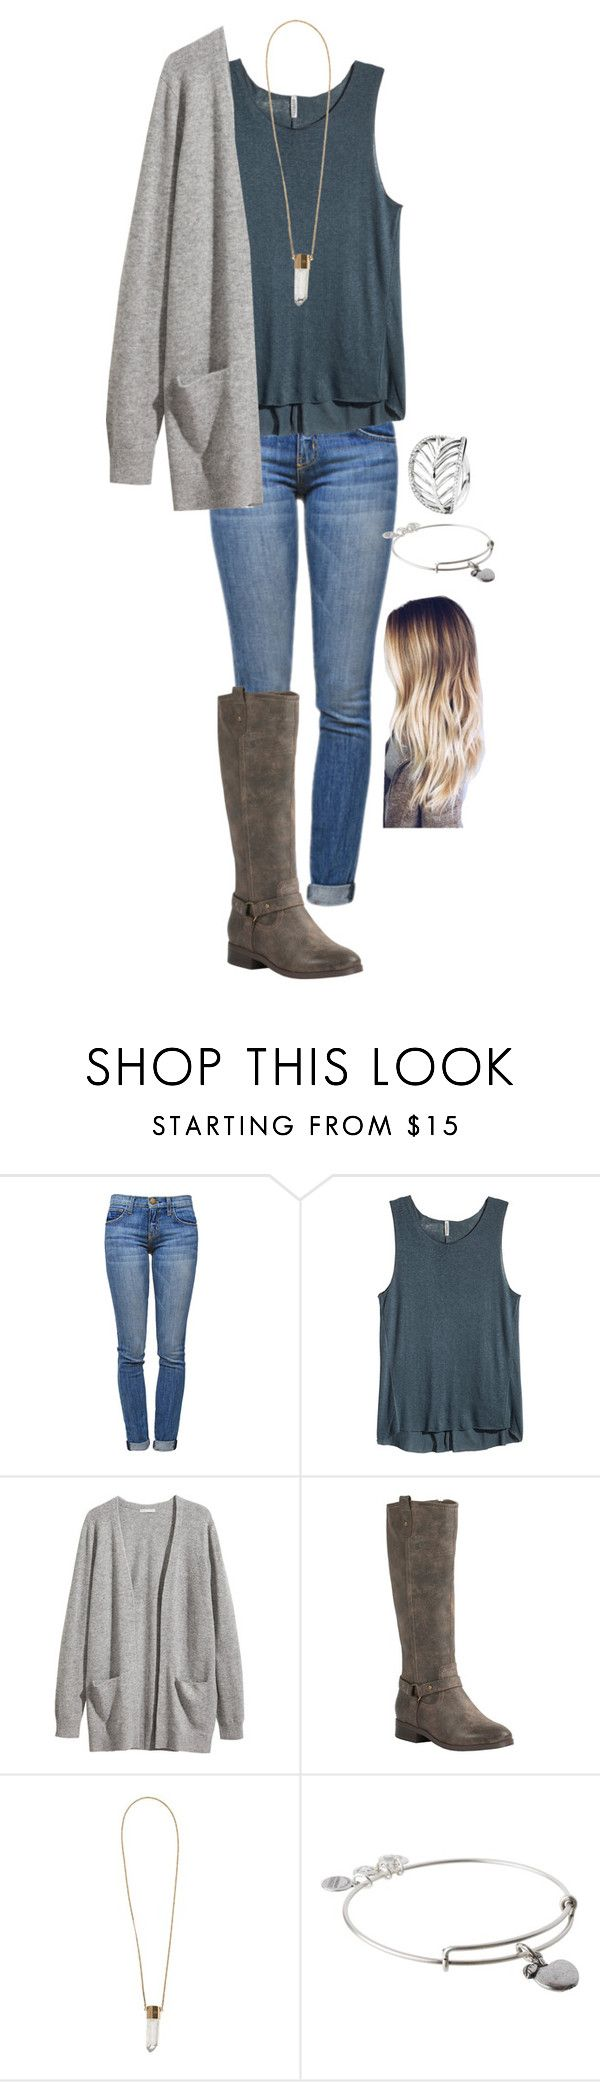 """""""Don't want to go to school tmrw"""" by madelynprice ❤ liked on Polyvore featuring Current/Elliott, H&M, Corkys, Chloé, Alex and Ani and Pandora"""